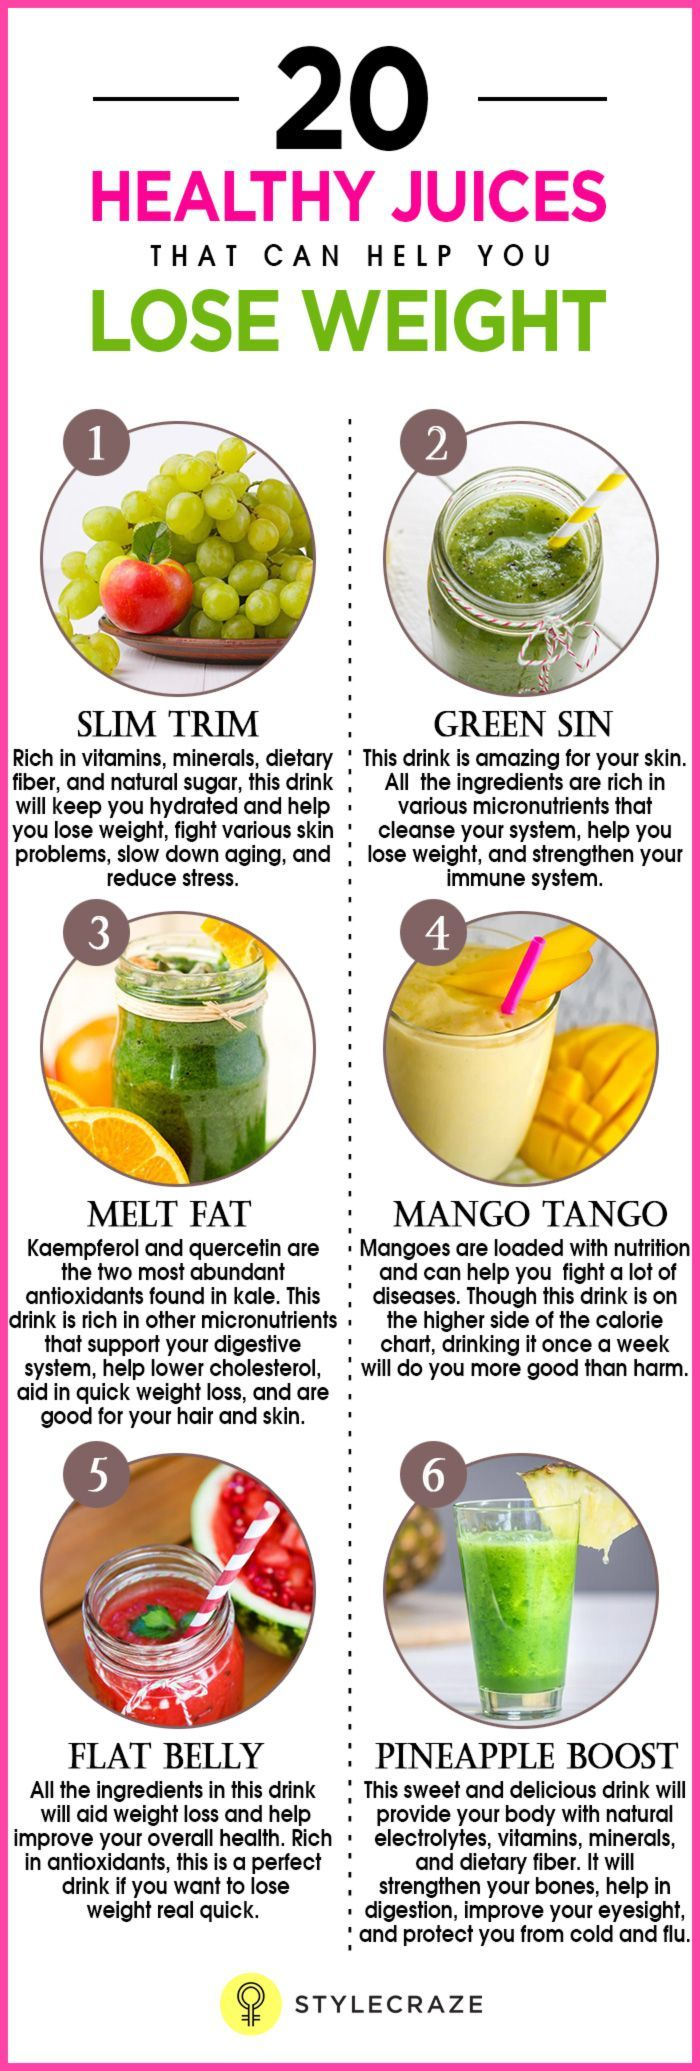 Pin On Juicing Recipes For Weightloss Juicing Recipes For Beginners Juicing Recipes To Lose Weight